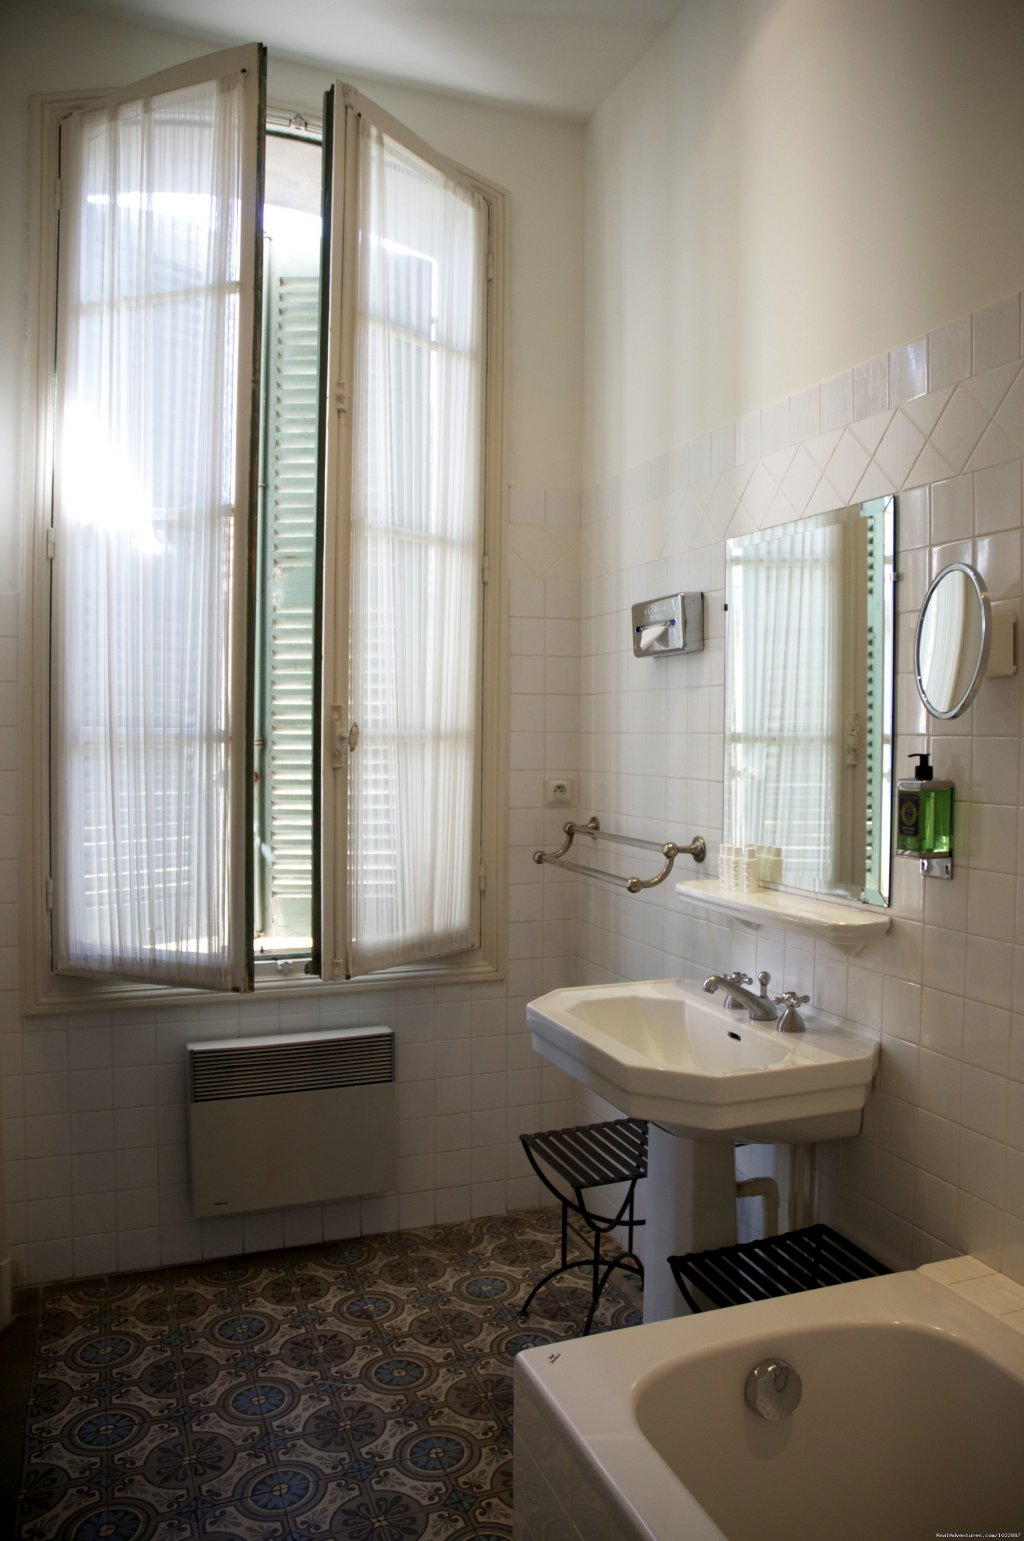 Bathroom of a SUPERIOR room | Image #6/24 | GRAND HOTEL NORD-PINUS a hotel with a soul